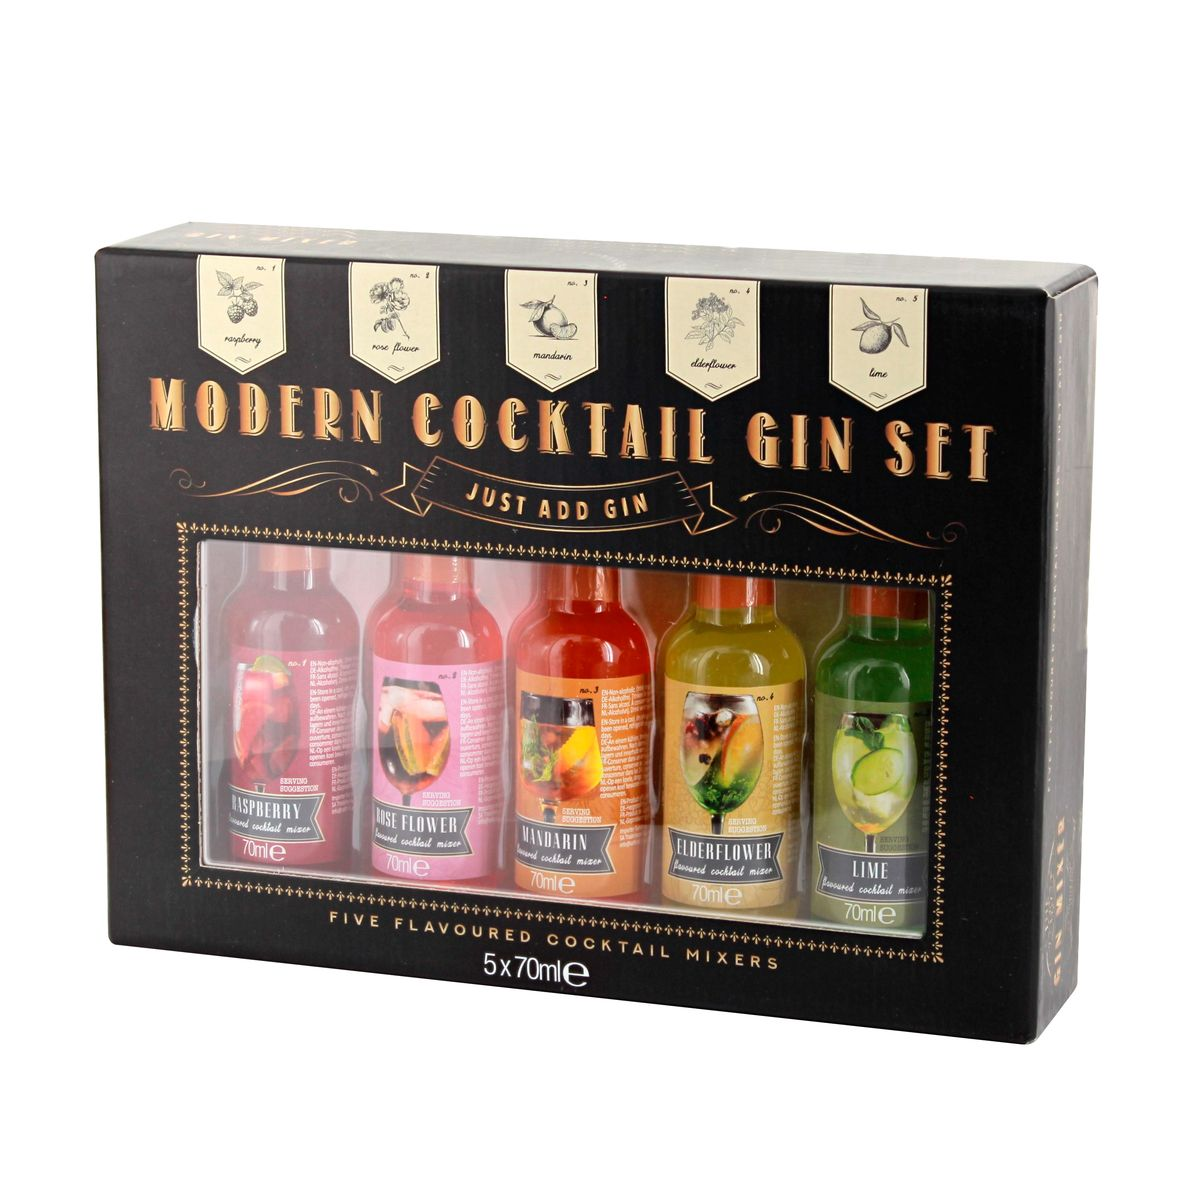 SIROP MODERN COCKTAIL GIN SET - CERF DELLIER